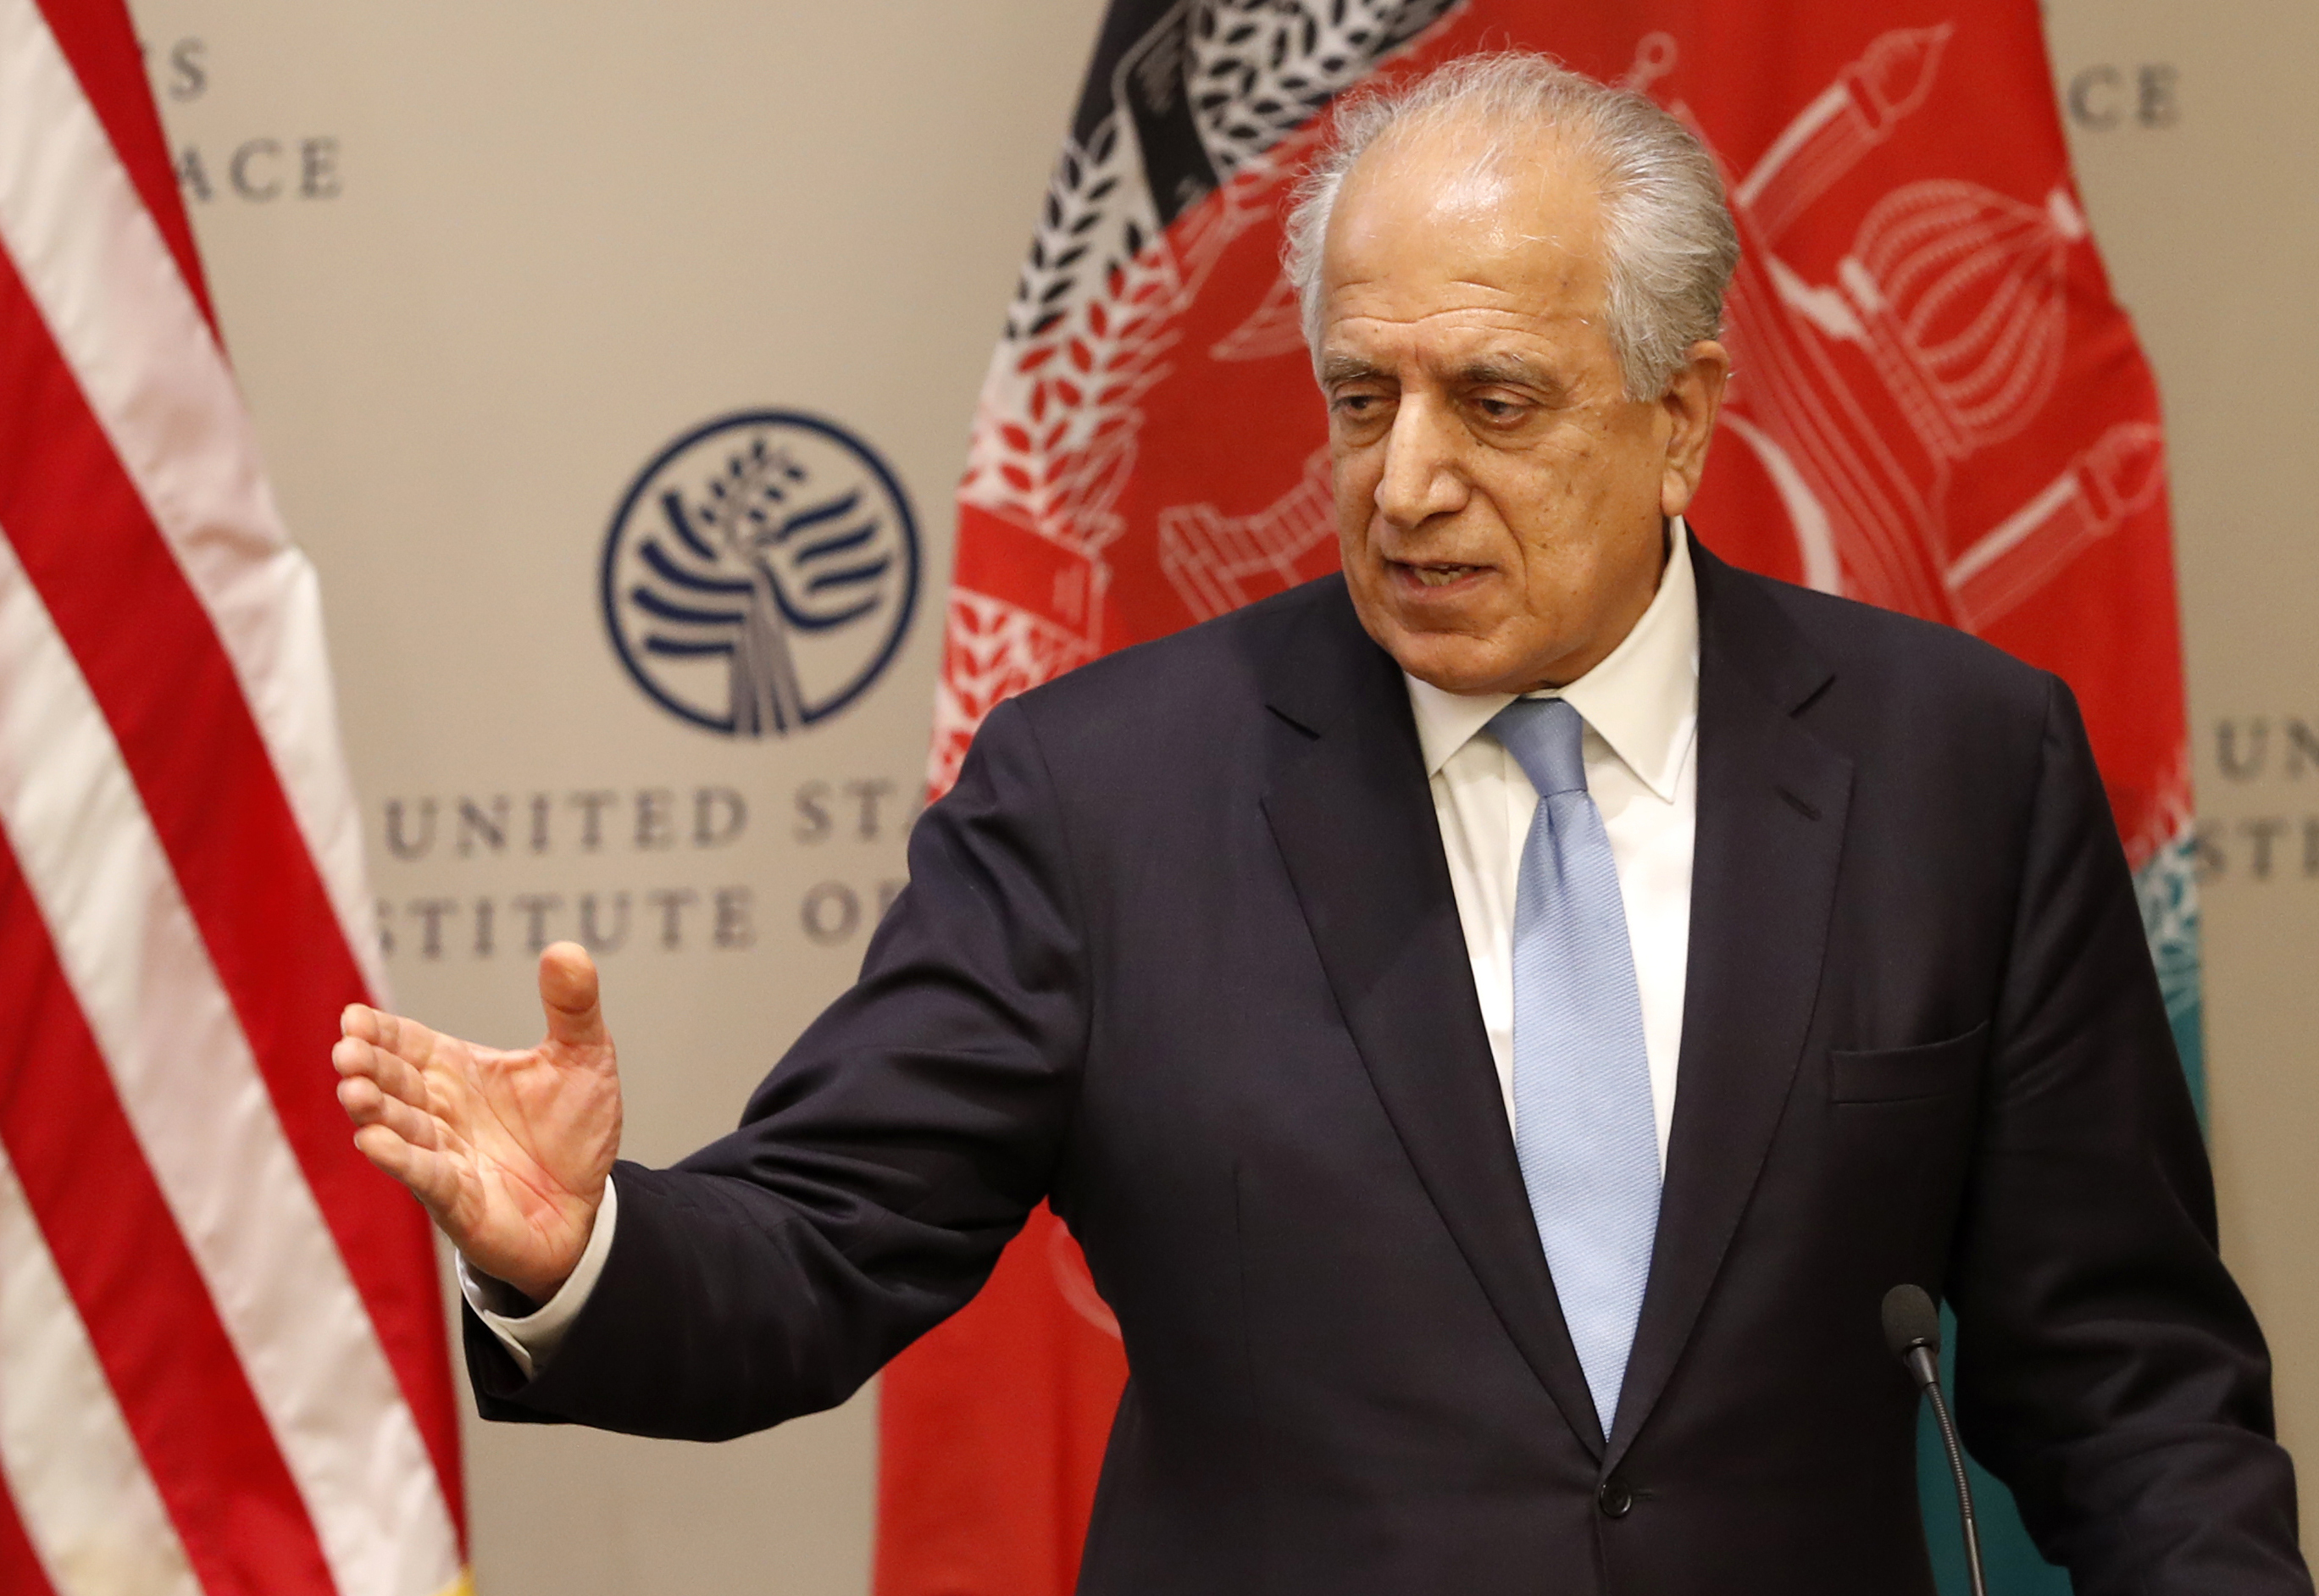 In this Feb. 8, 2019, file photo, Special Representative for Afghanistan Reconciliation Zalmay Khalilzad speaks on the prospects for peace at the U.S. Institute of Peace, in Washington. (Jacquelyn Martin/AP)